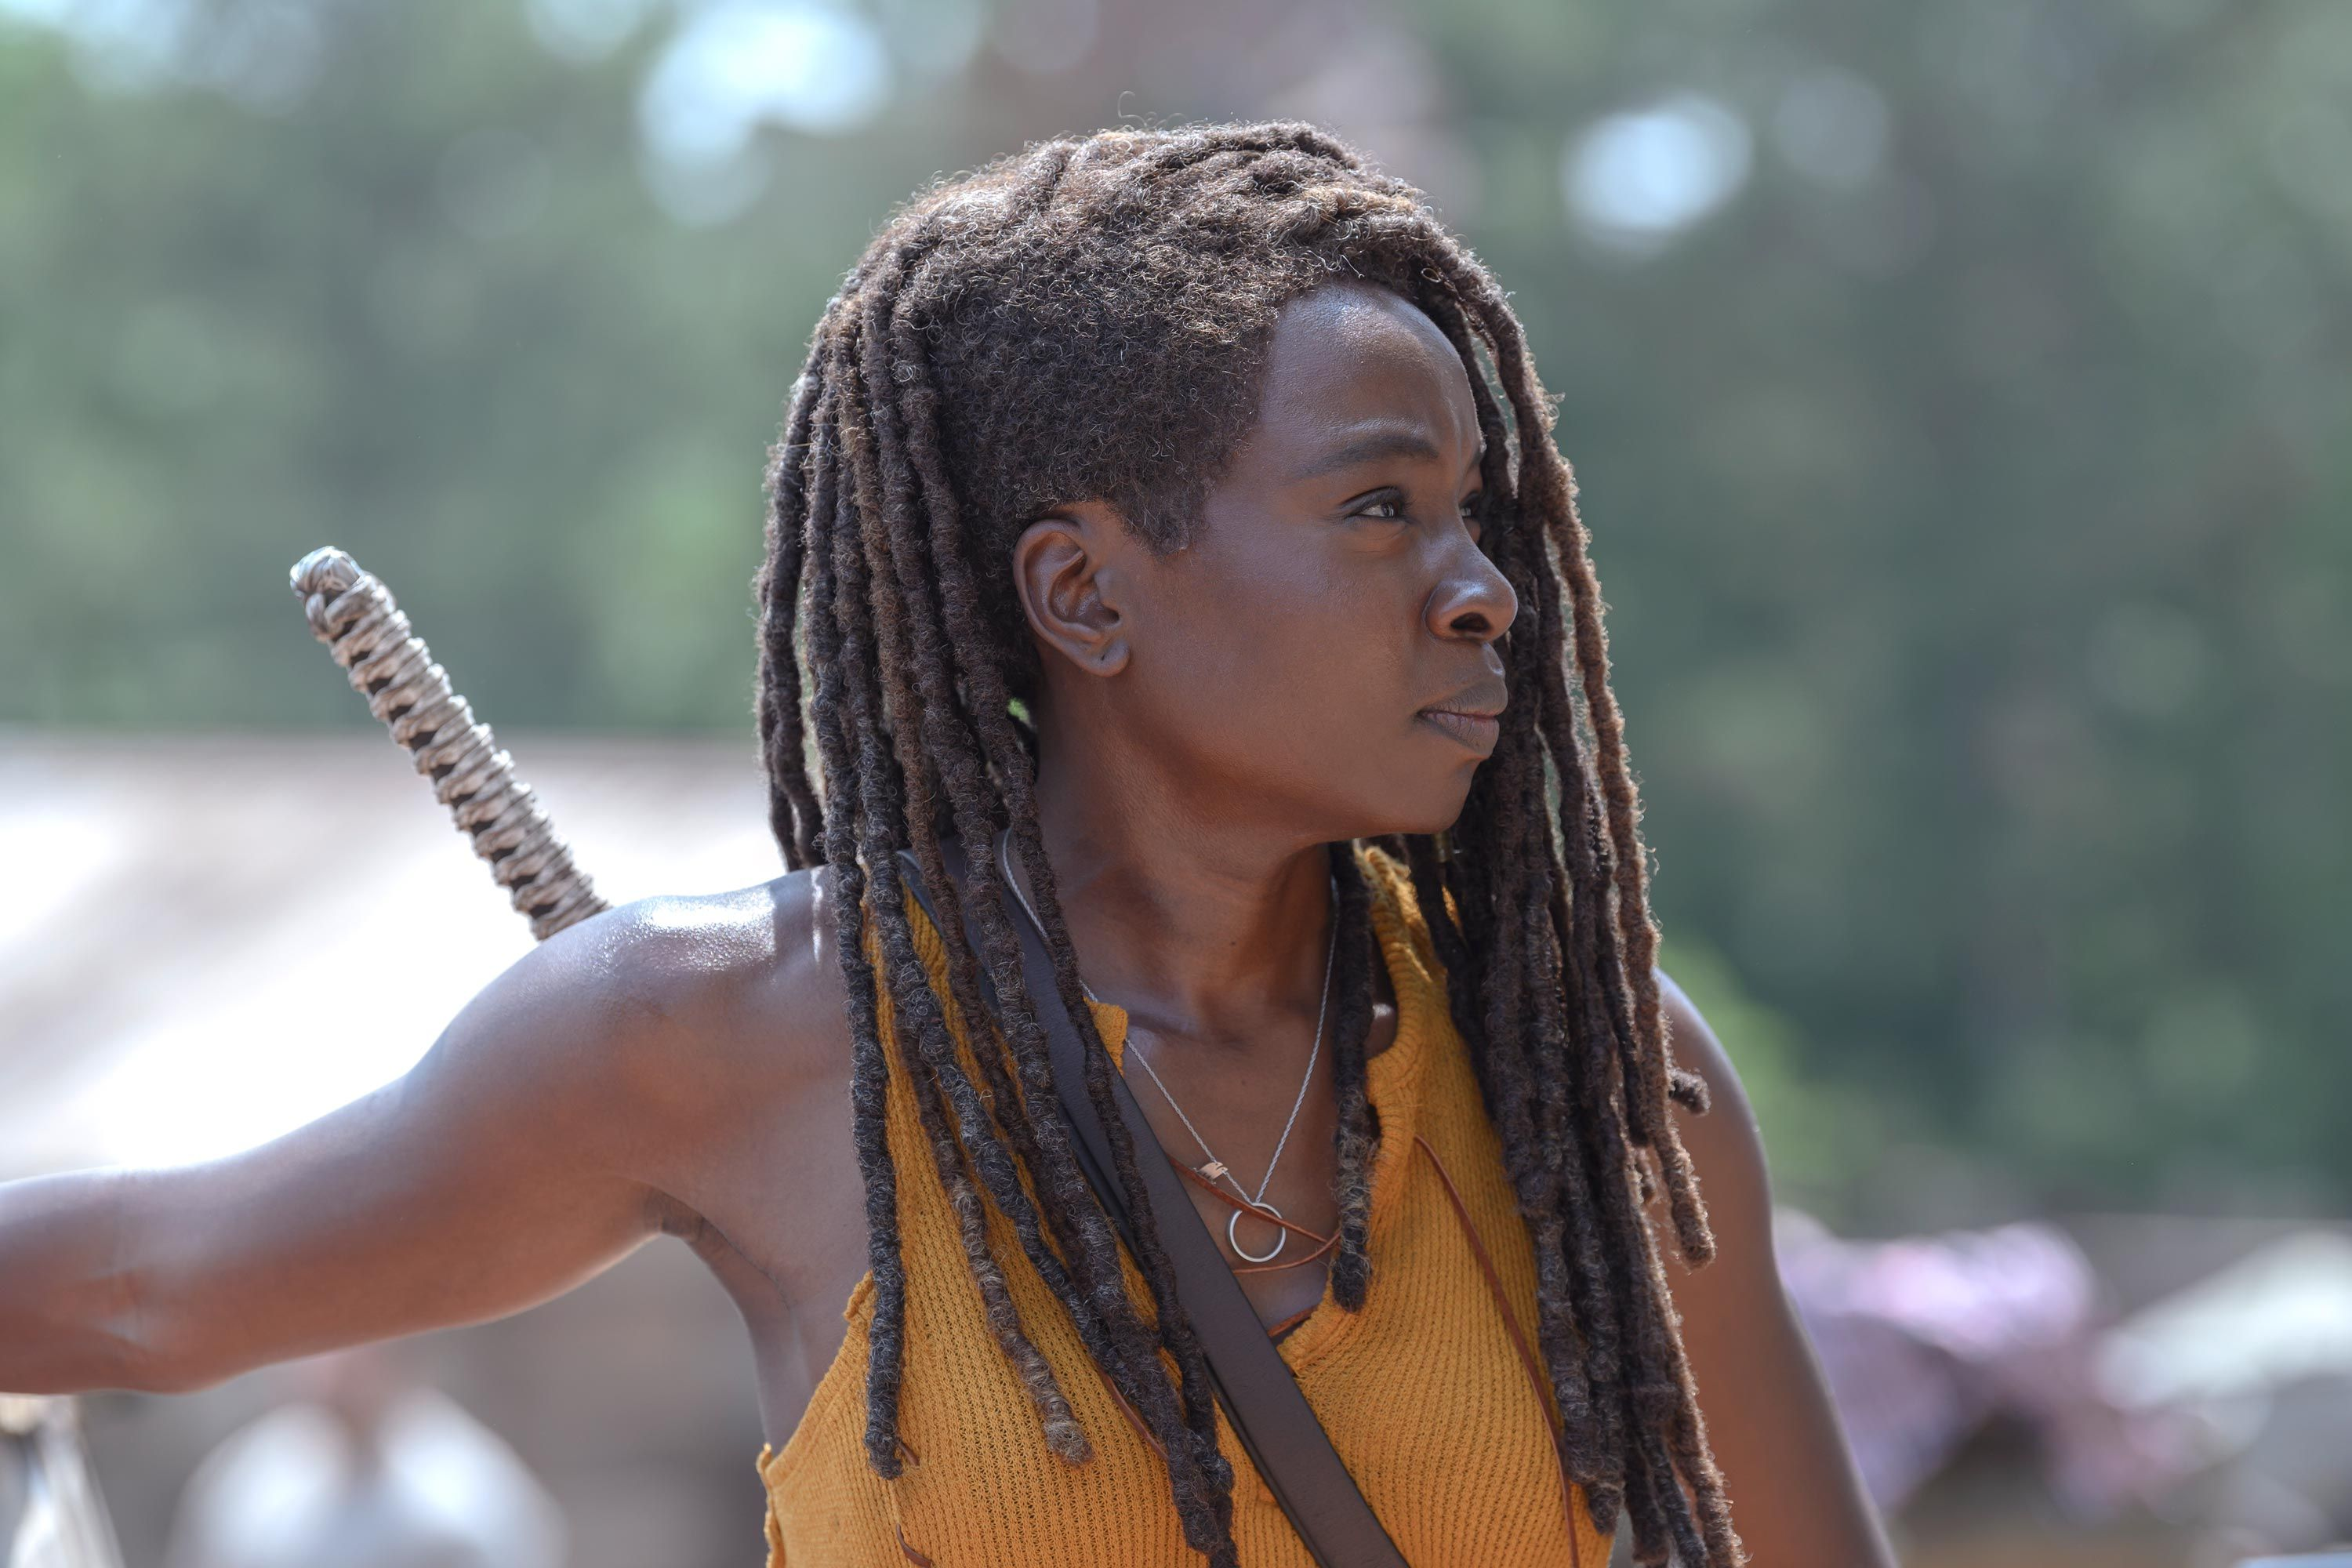 The Walking Dead shares first look at Michonne in season 10b ahead of Danai Gurira exit